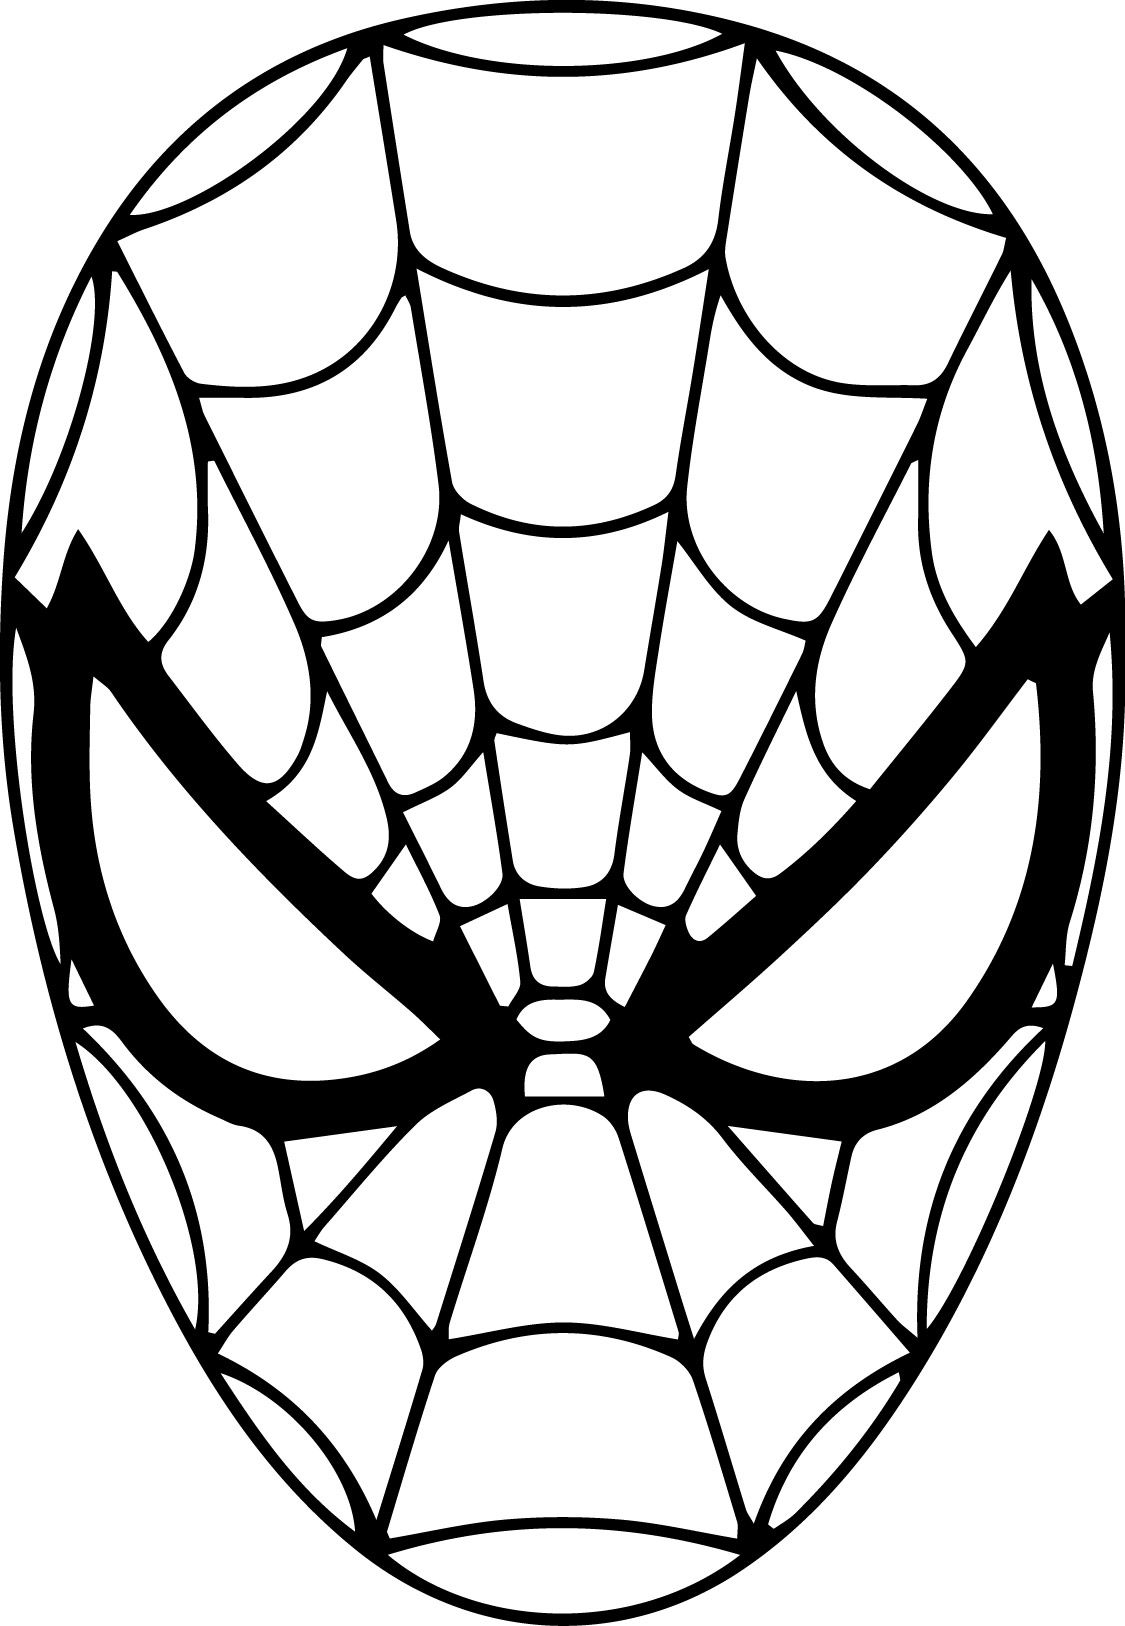 Spiderman Mask Coloring Page Wecoloringpage Spiderman Face Spiderman Drawing Spiderman Coloring